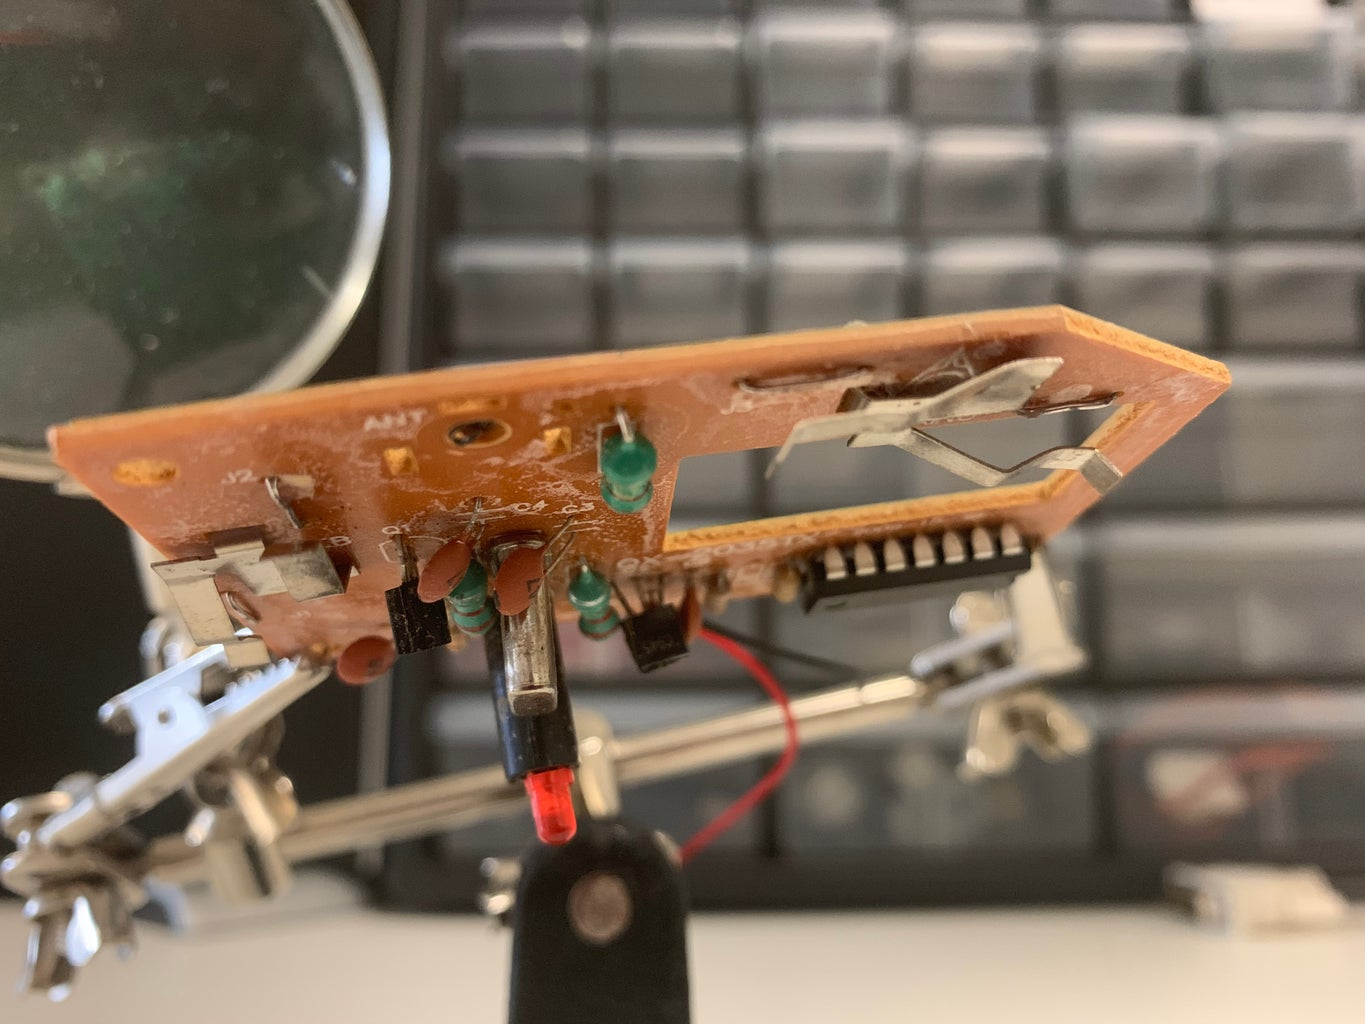 How to Safely Desolder Electronic Components for Reuse